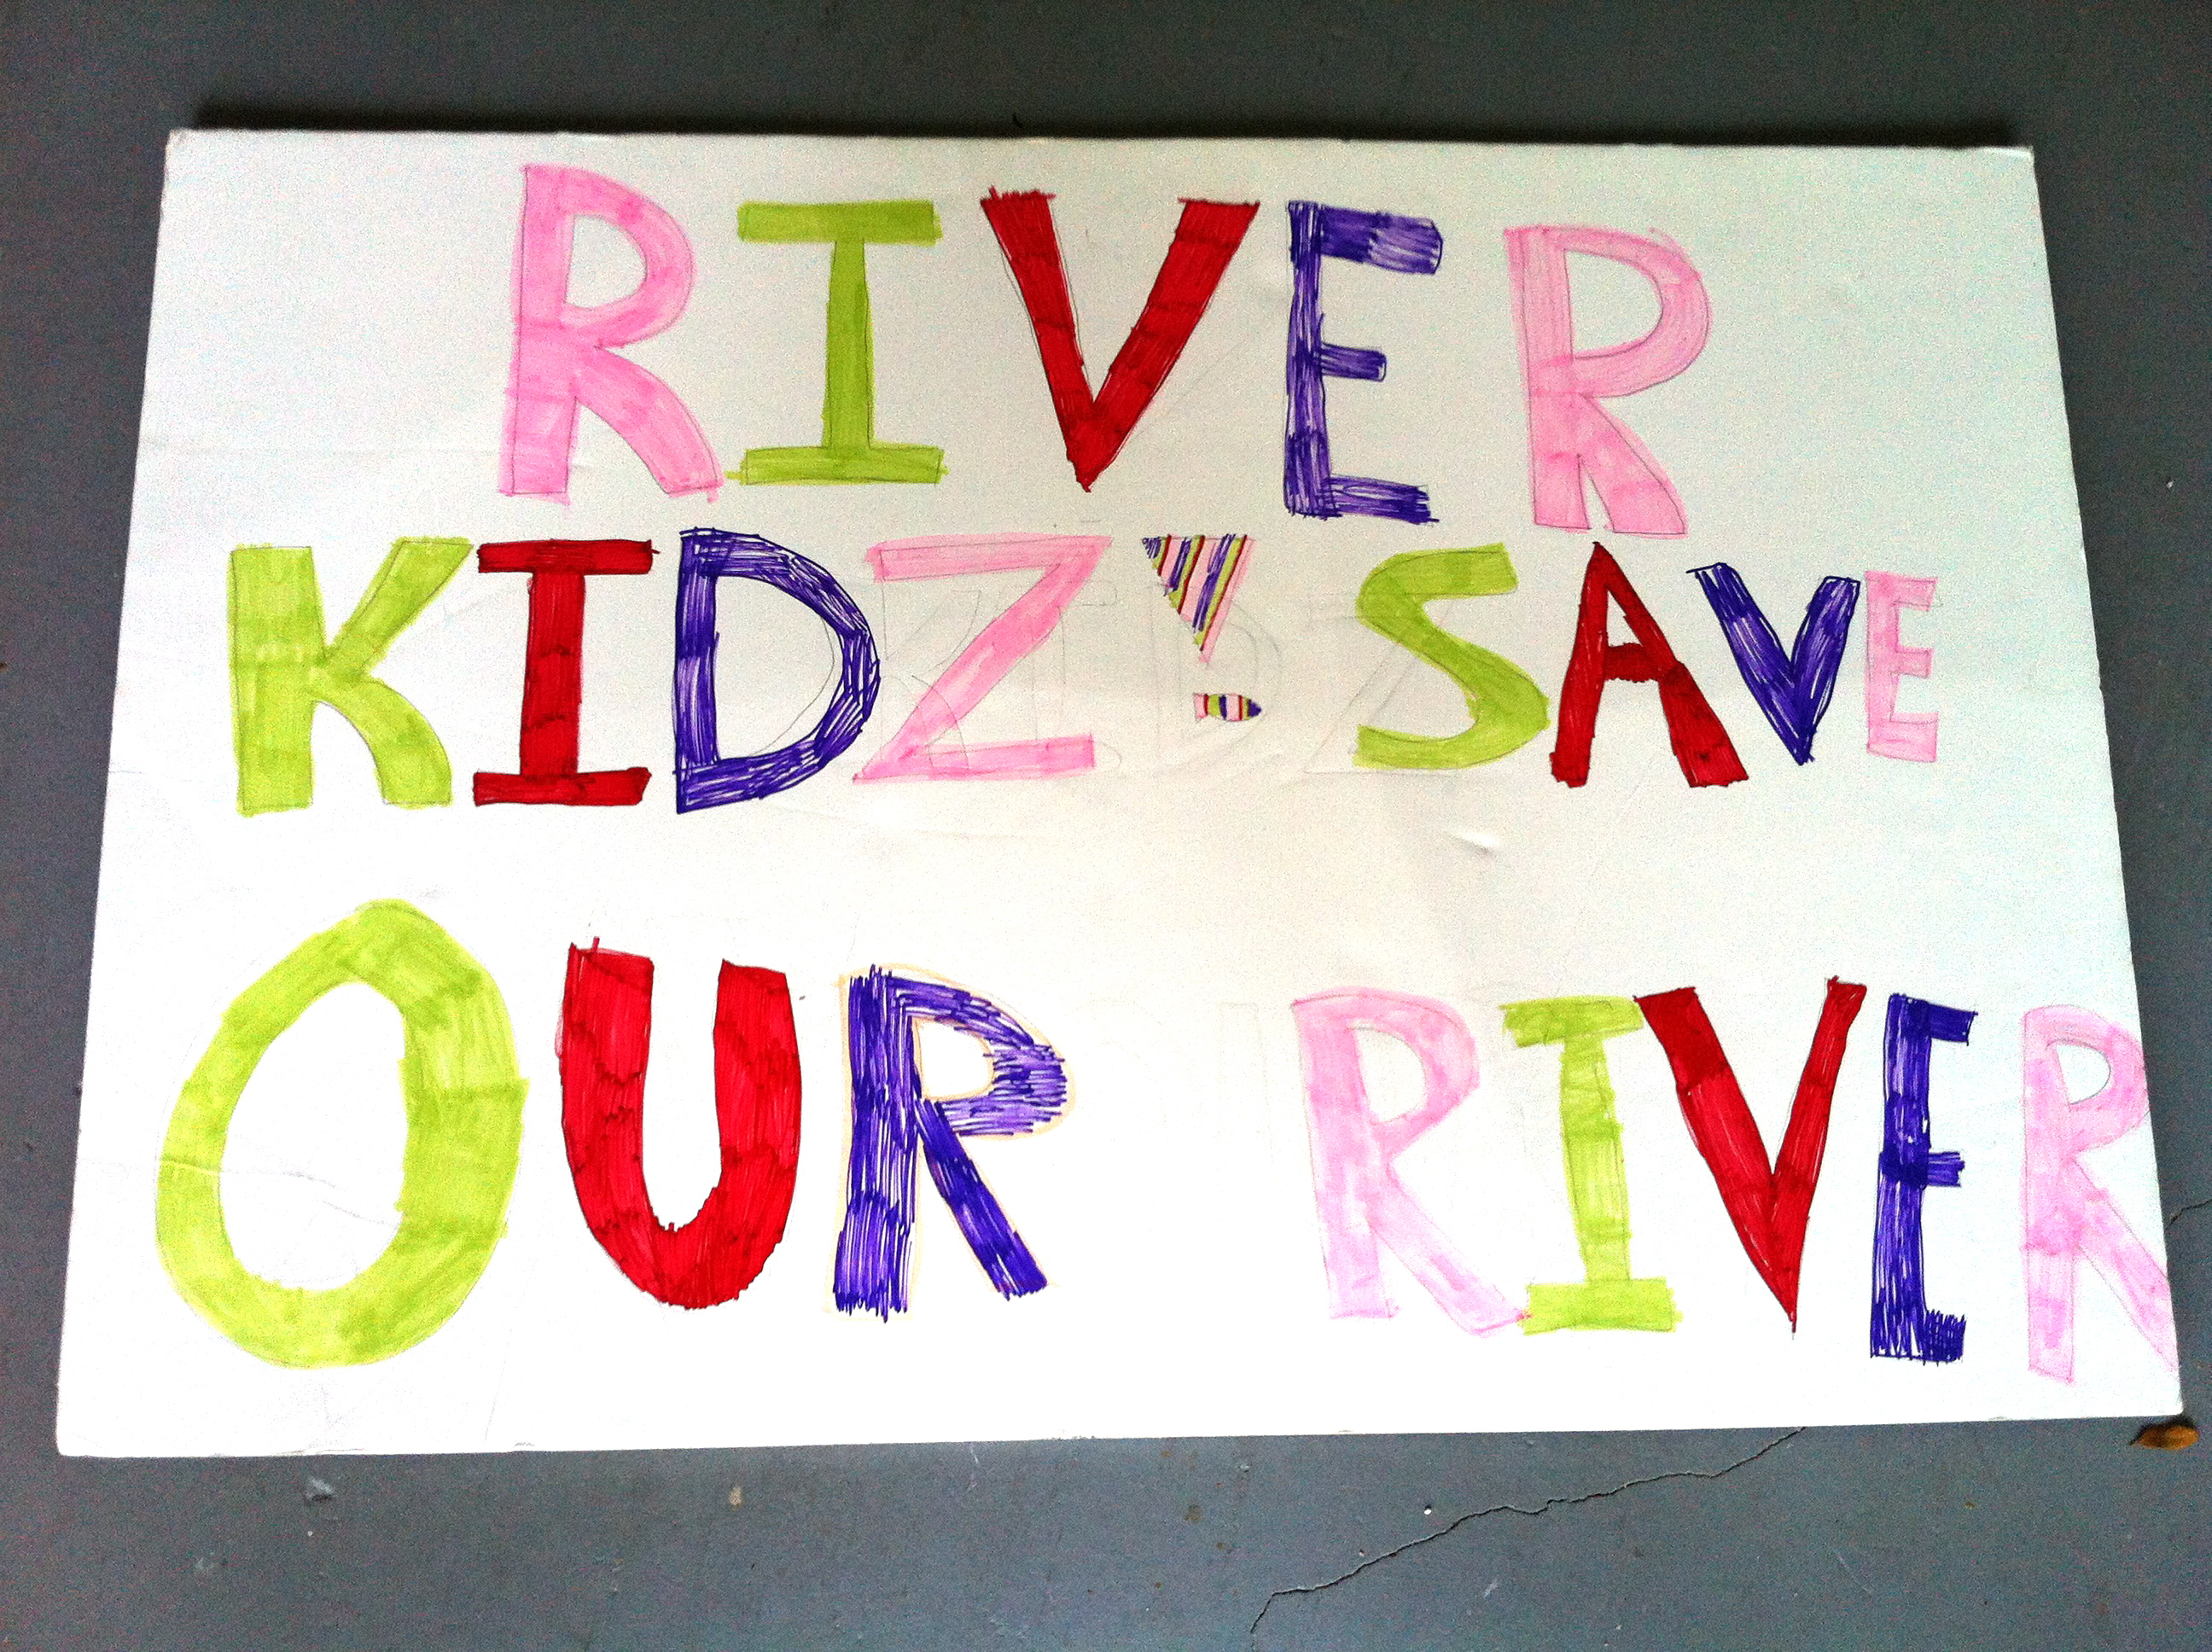 Inspirational Slogans Inspirational Slogans From The River Kidz For Our Indian River